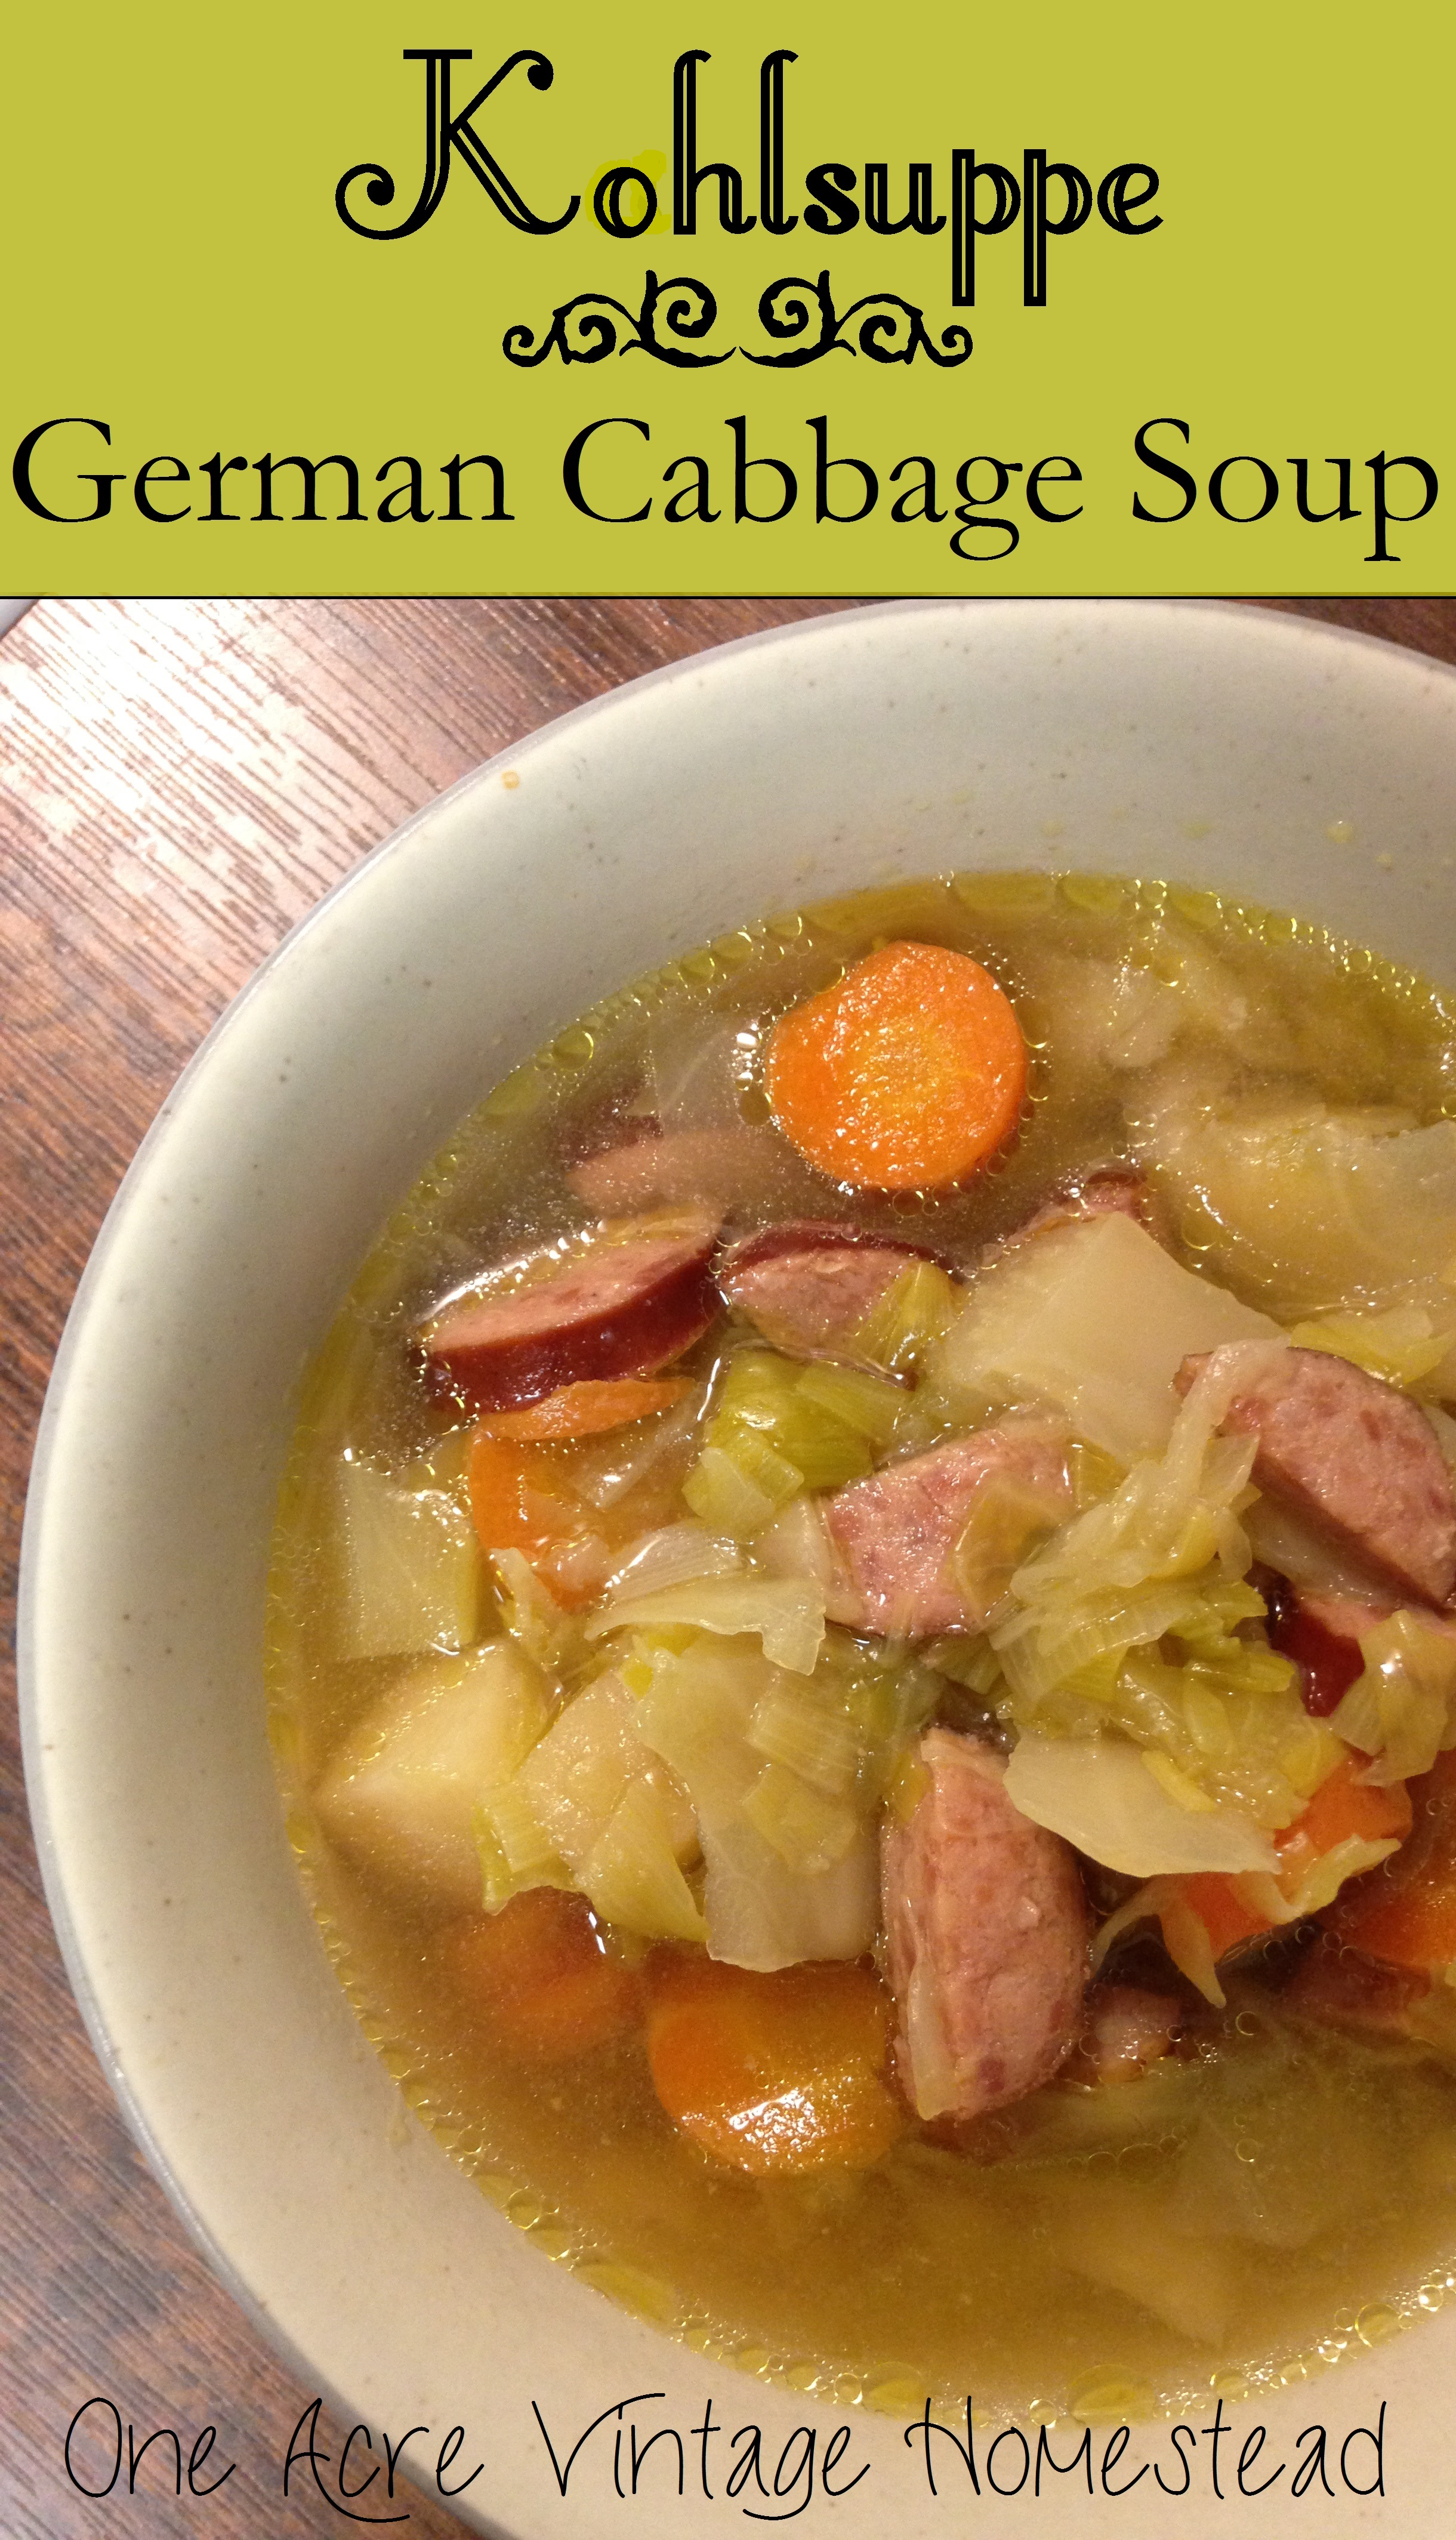 Kohlsuppe - An Authentic Slow Cooked German Cabbage Soup